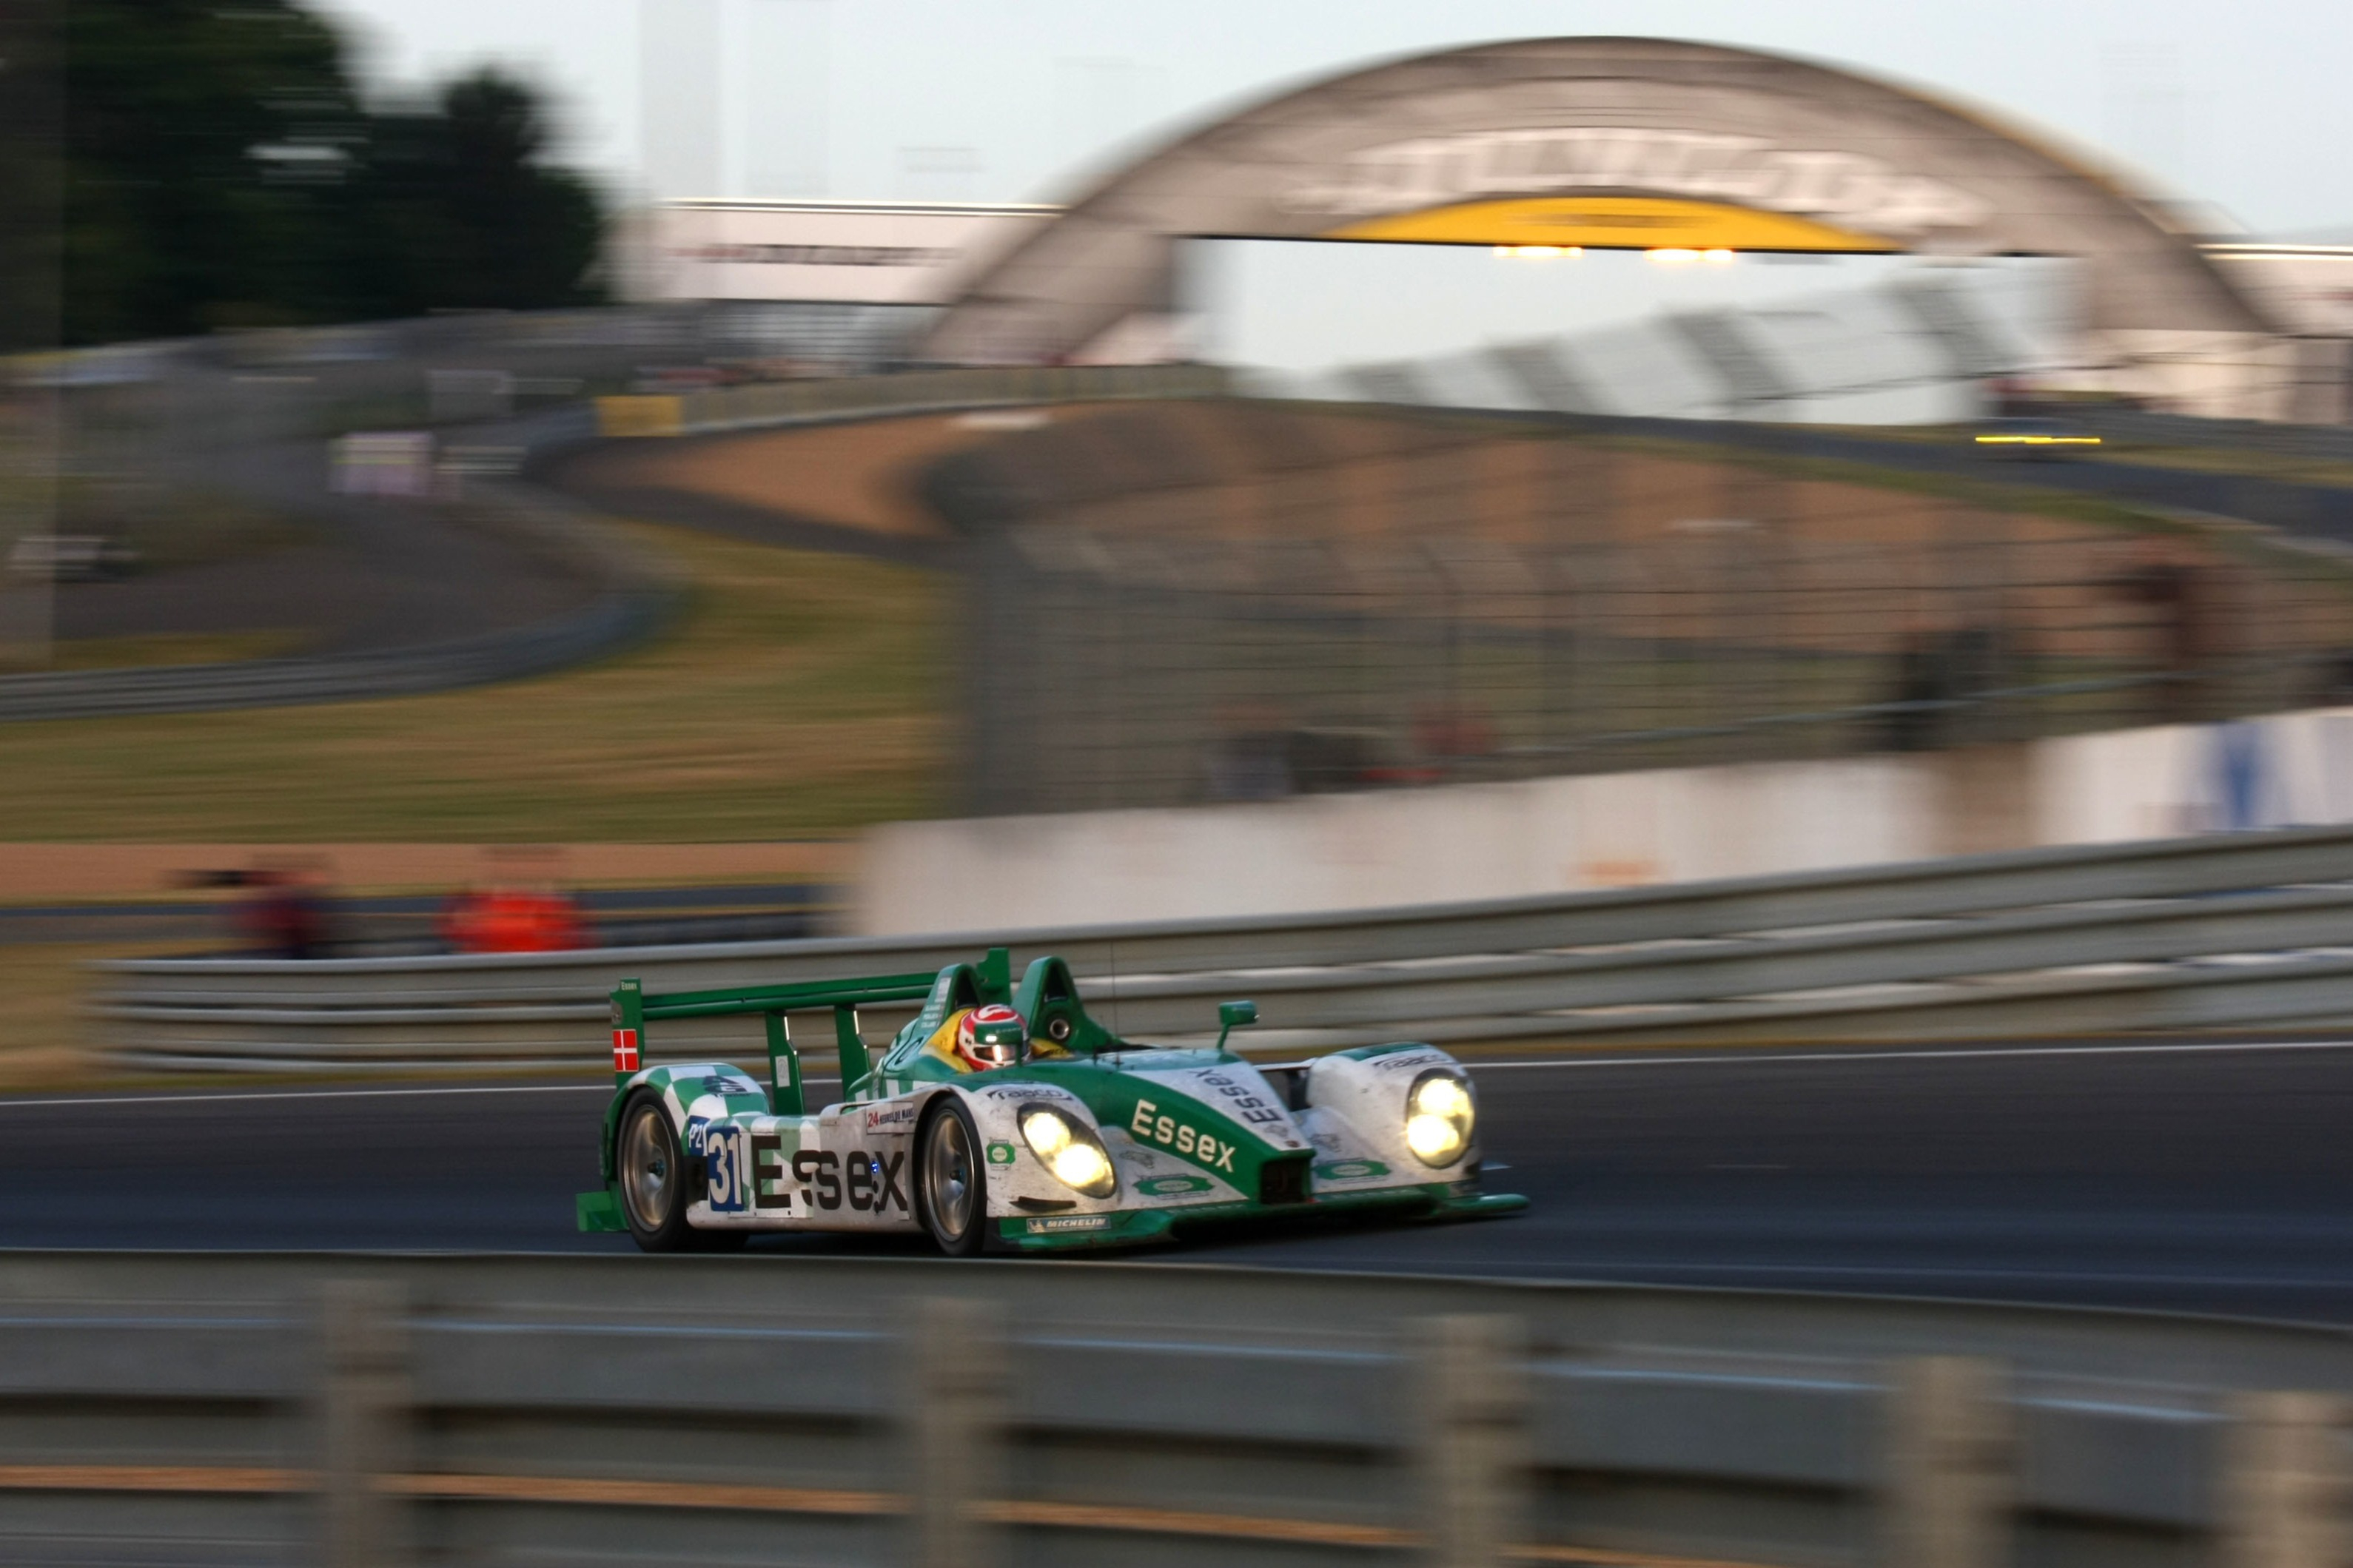 Team Essex Porsche took second consecutive Le Mans LMP2 win in 2009 with Danes Casper Elgaard and Kristian Poulsen joined by French ace Emmanuel Collard